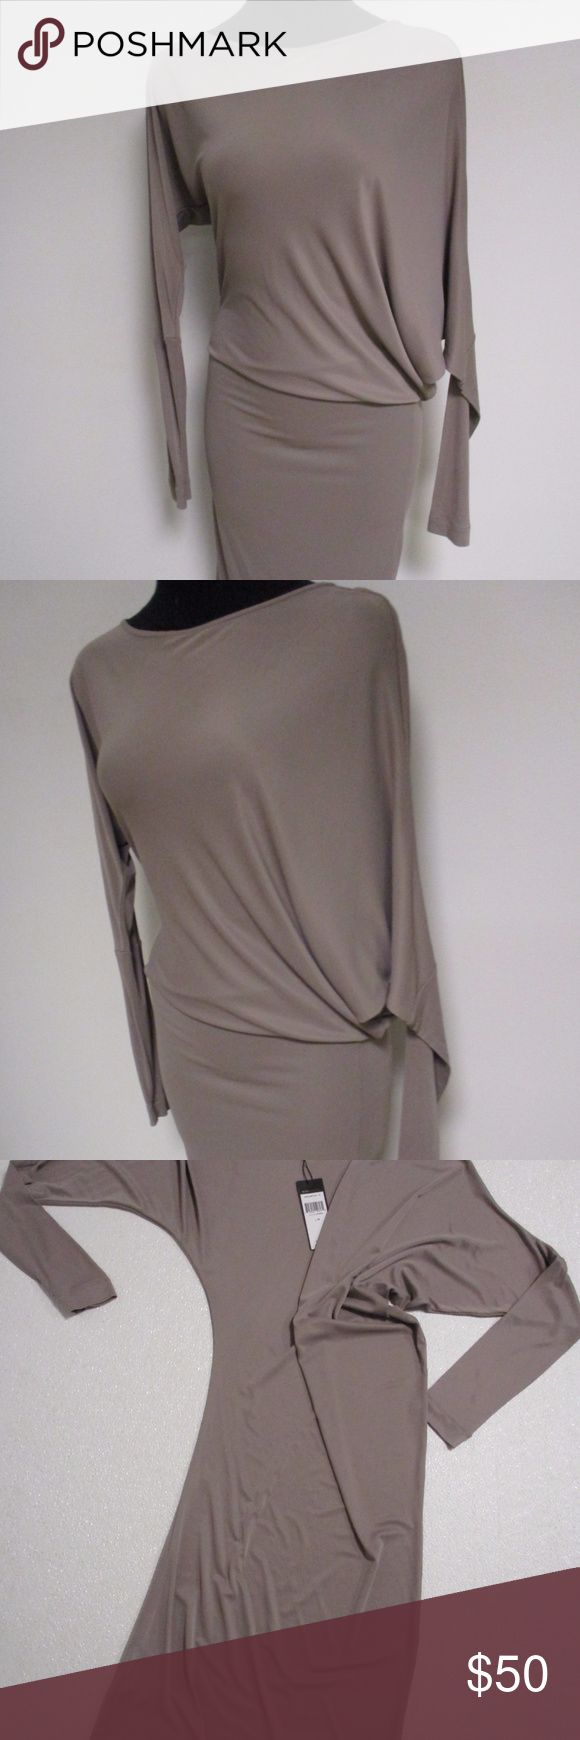 """BCBG Maxazria Stretch Bodycon Dress Medium NWT Brand new dress from BCBG Maxazria  Size medium  Not sure what this style is called, but sleeve and dress blend in together and fits snug across the body  Color is Cinder  Machine washable acetate/spandex  Very flattering dress  New with tag attached  Retail price $108  Bust- 19.5"""" laid flat Waist- 31"""" Hips- 40"""" Length- 43"""" BCBGMaxAzria Dresses"""